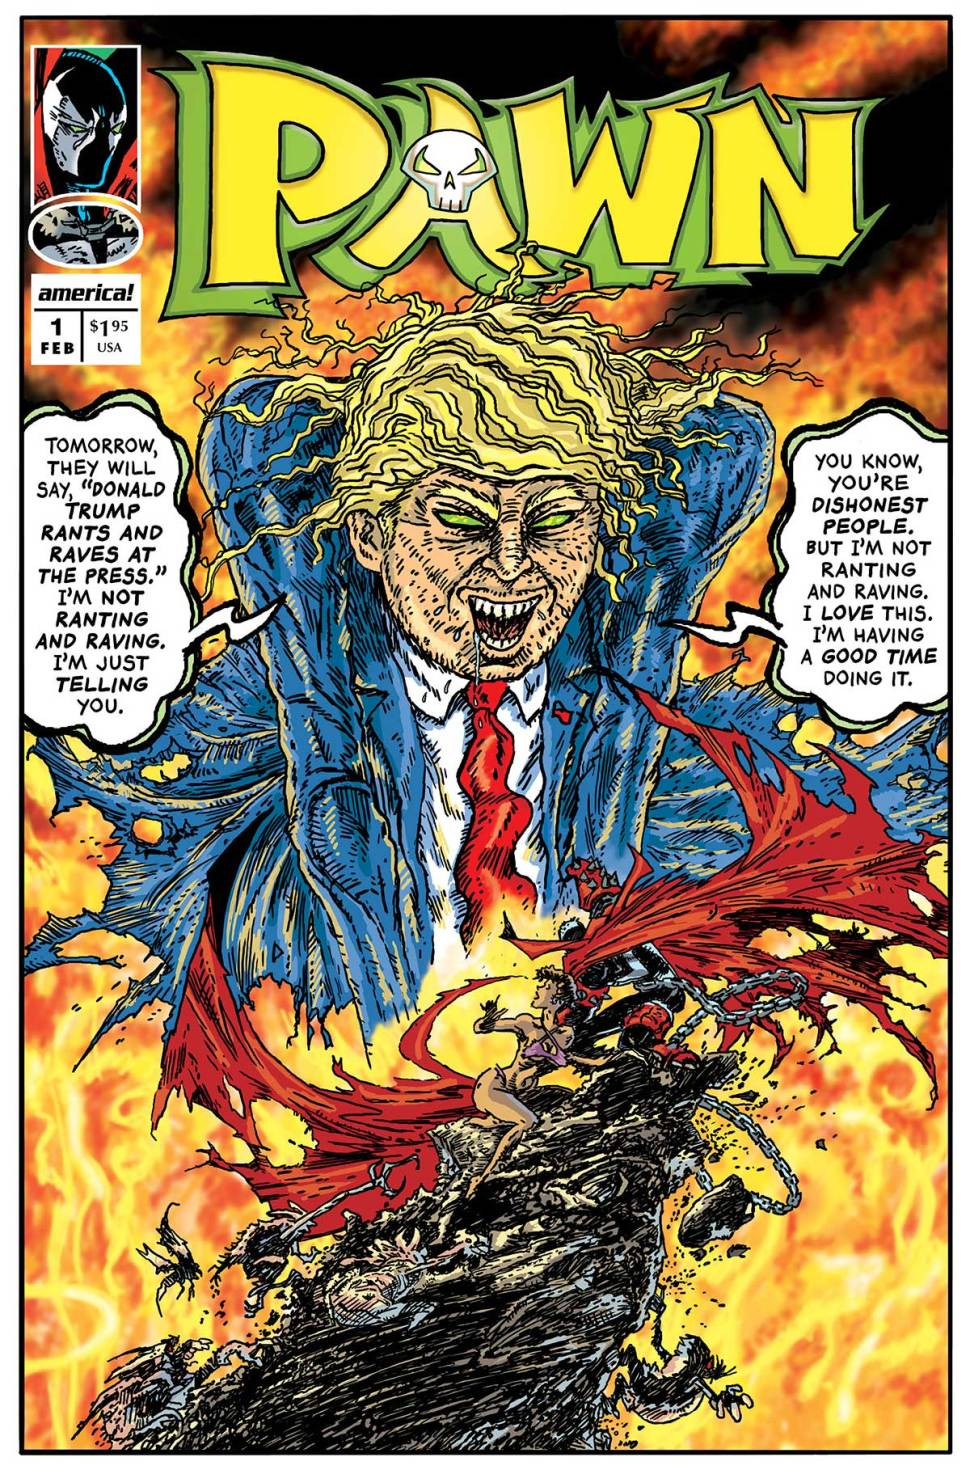 How To Make A Comic Book Cover In Photo : Trump s dumbest utterances presented as comic book covers